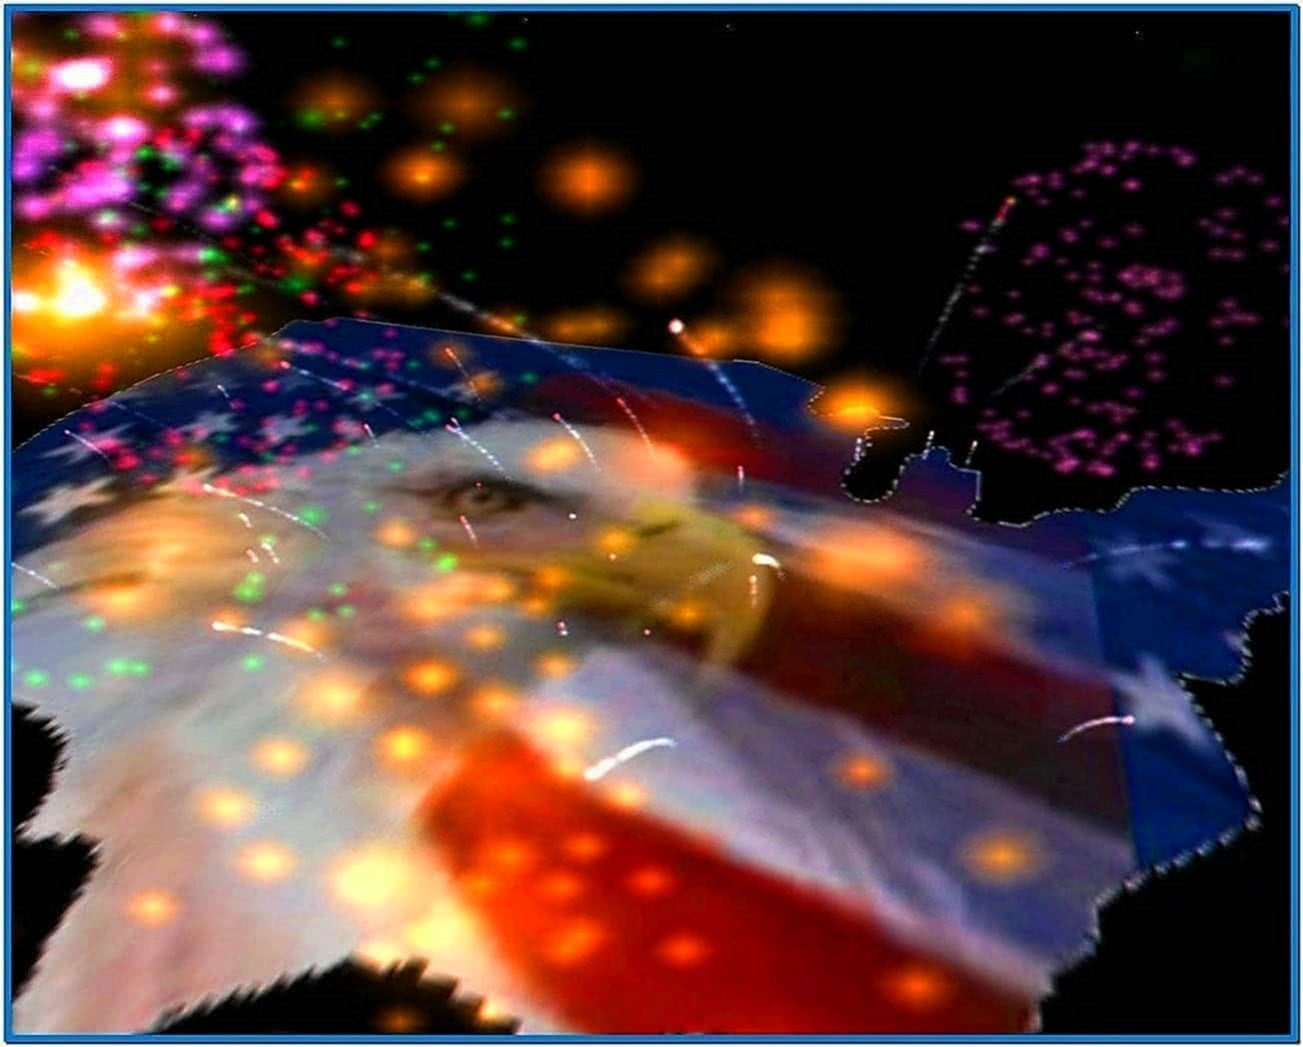 Opengl Screensaver Fireworks